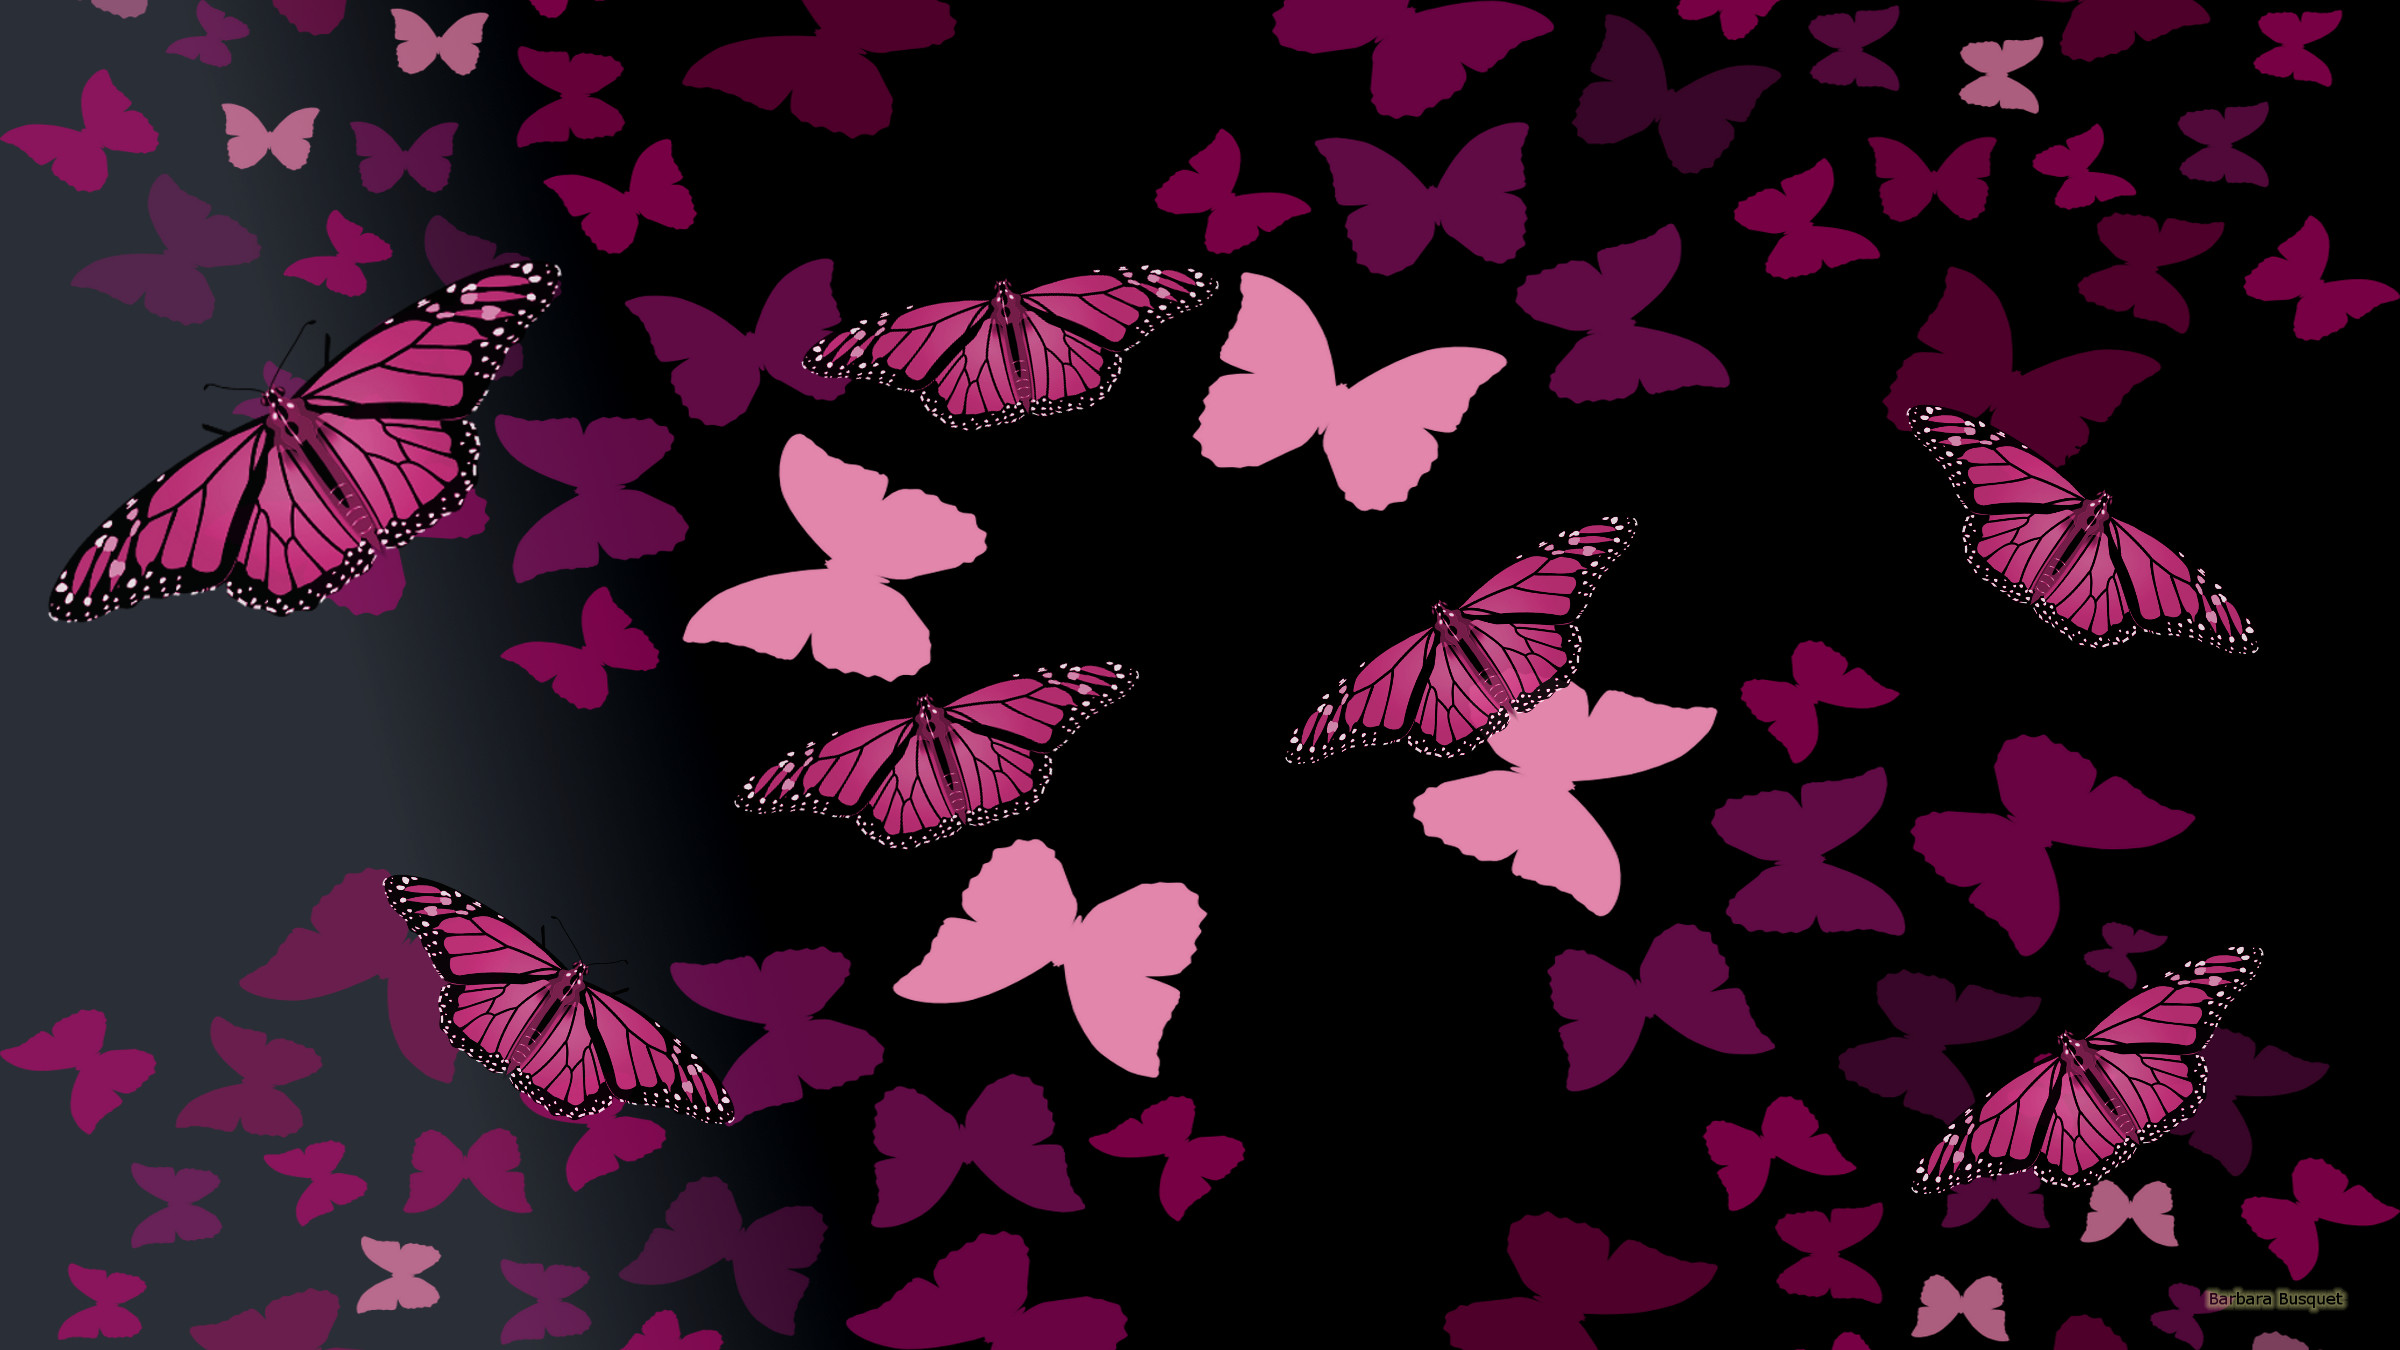 Black Wallpaper With Pink Butterflies Barbaras Hd Wallpapers